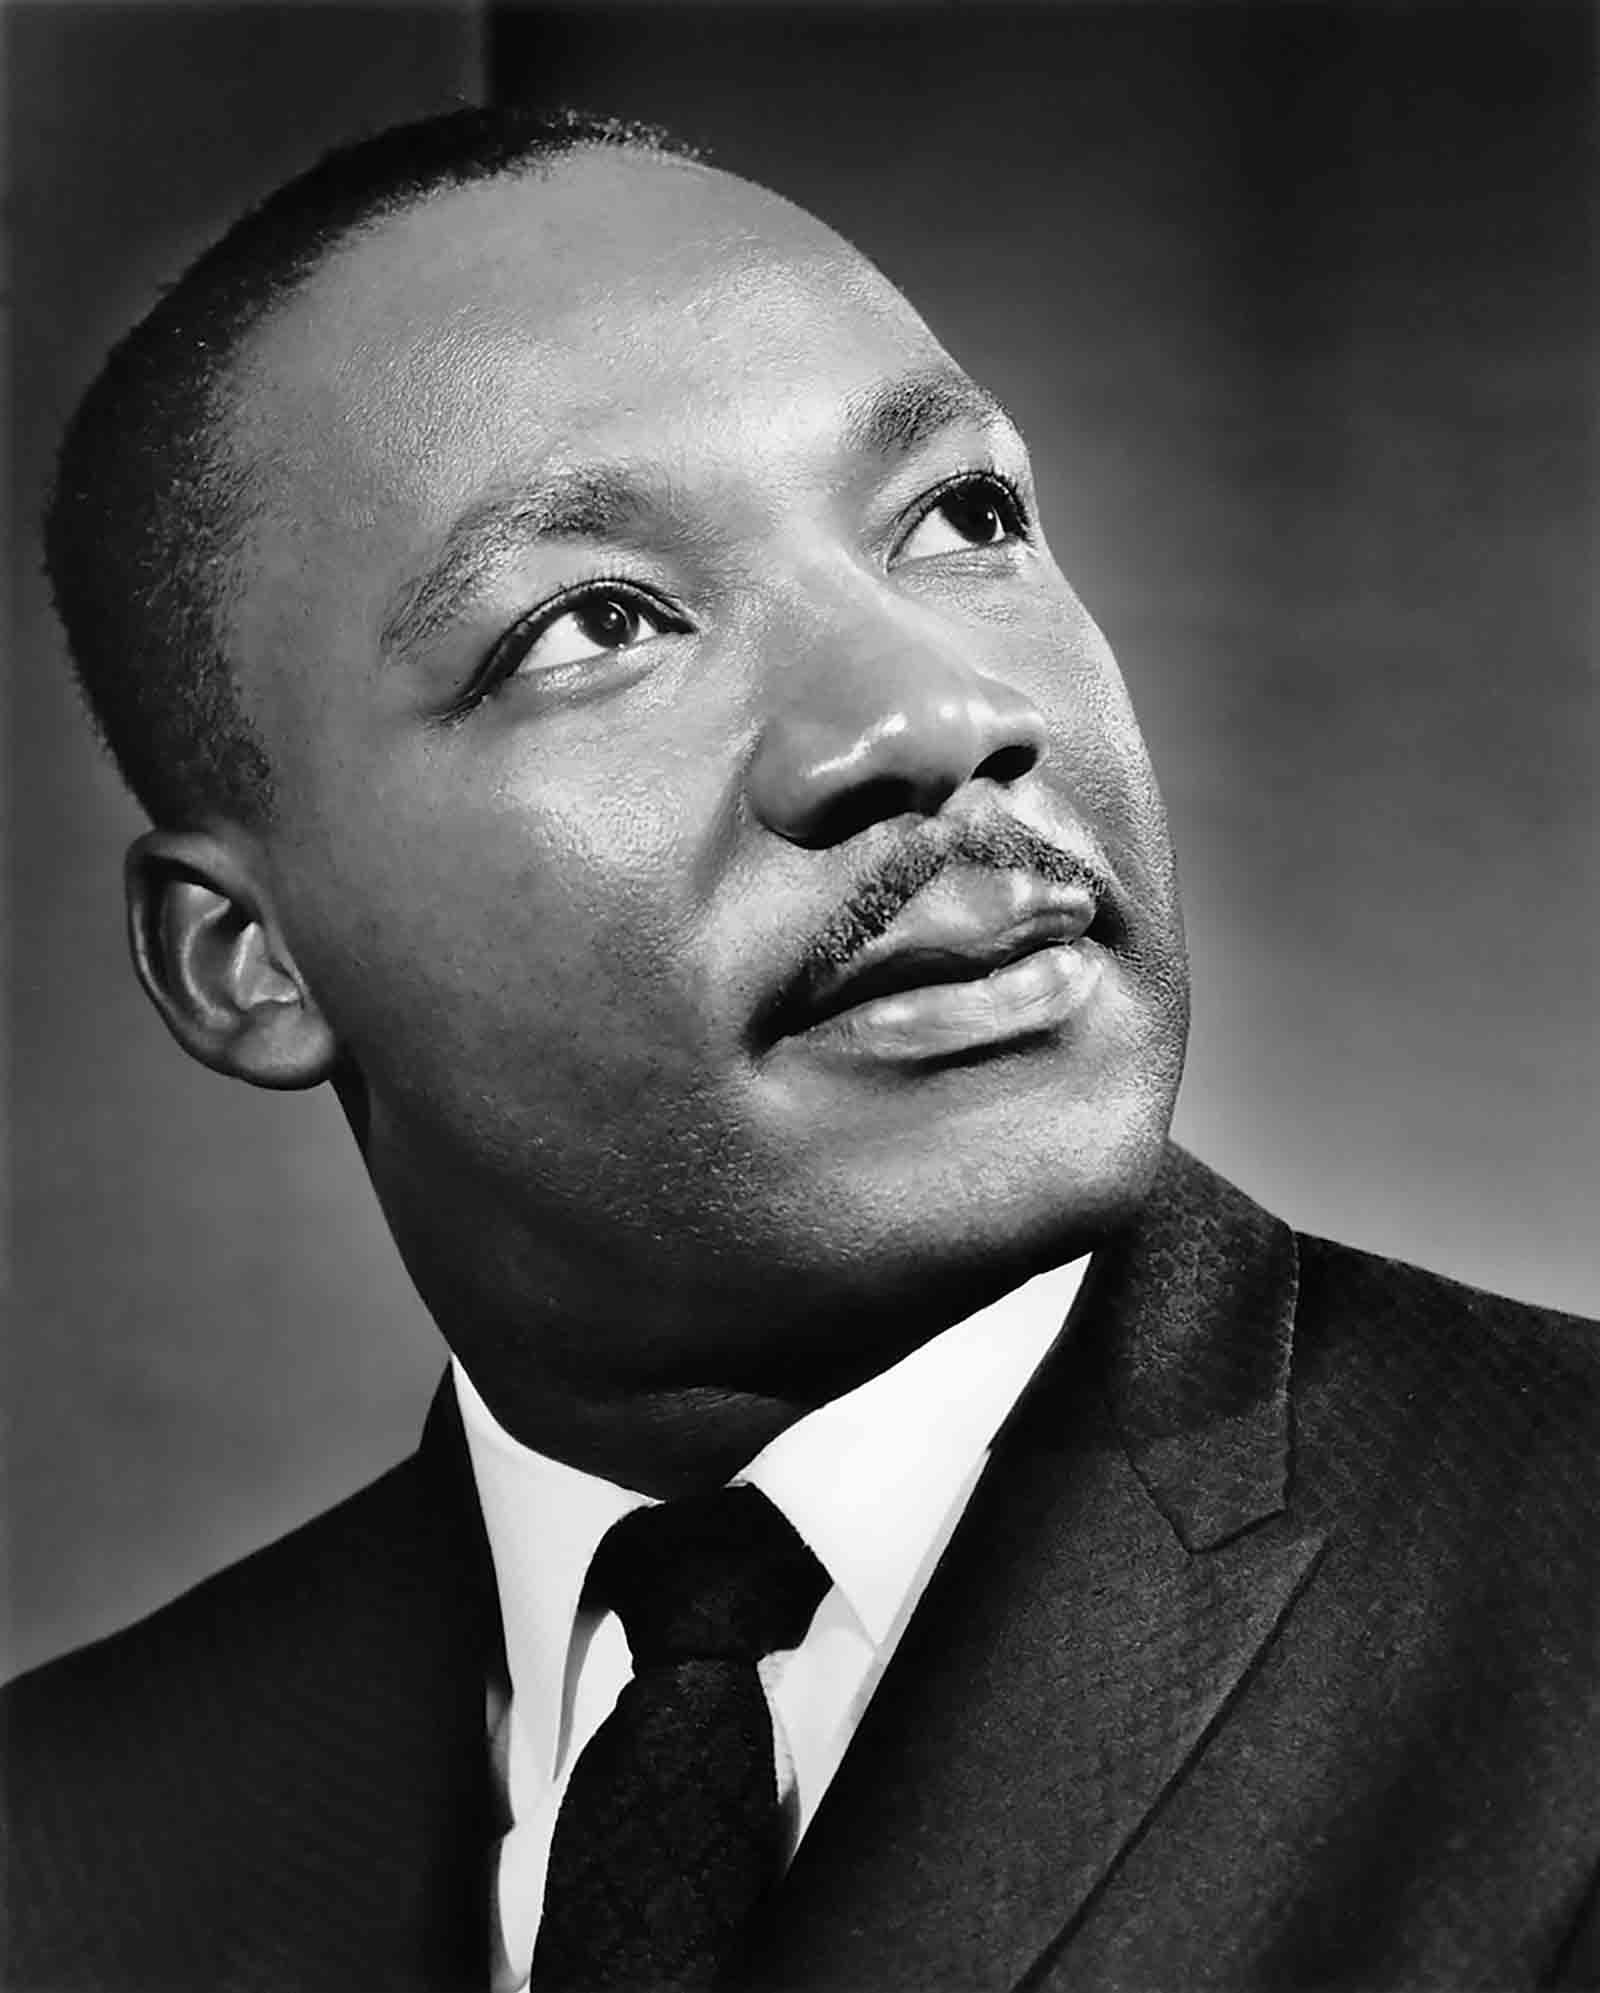 dr martin luther king jrs critique That martin luther king jr speech used in ram's car ad it goes on to criticize car ads usa today networkjosh hafner, usa today published 1:33 pm et feb 5, 2018 | updated 4:04 pm et feb 5, 2018 close in the spirit of dr martin luther king, jr, ram truck owners also believe in a life of serving others ap mlk.